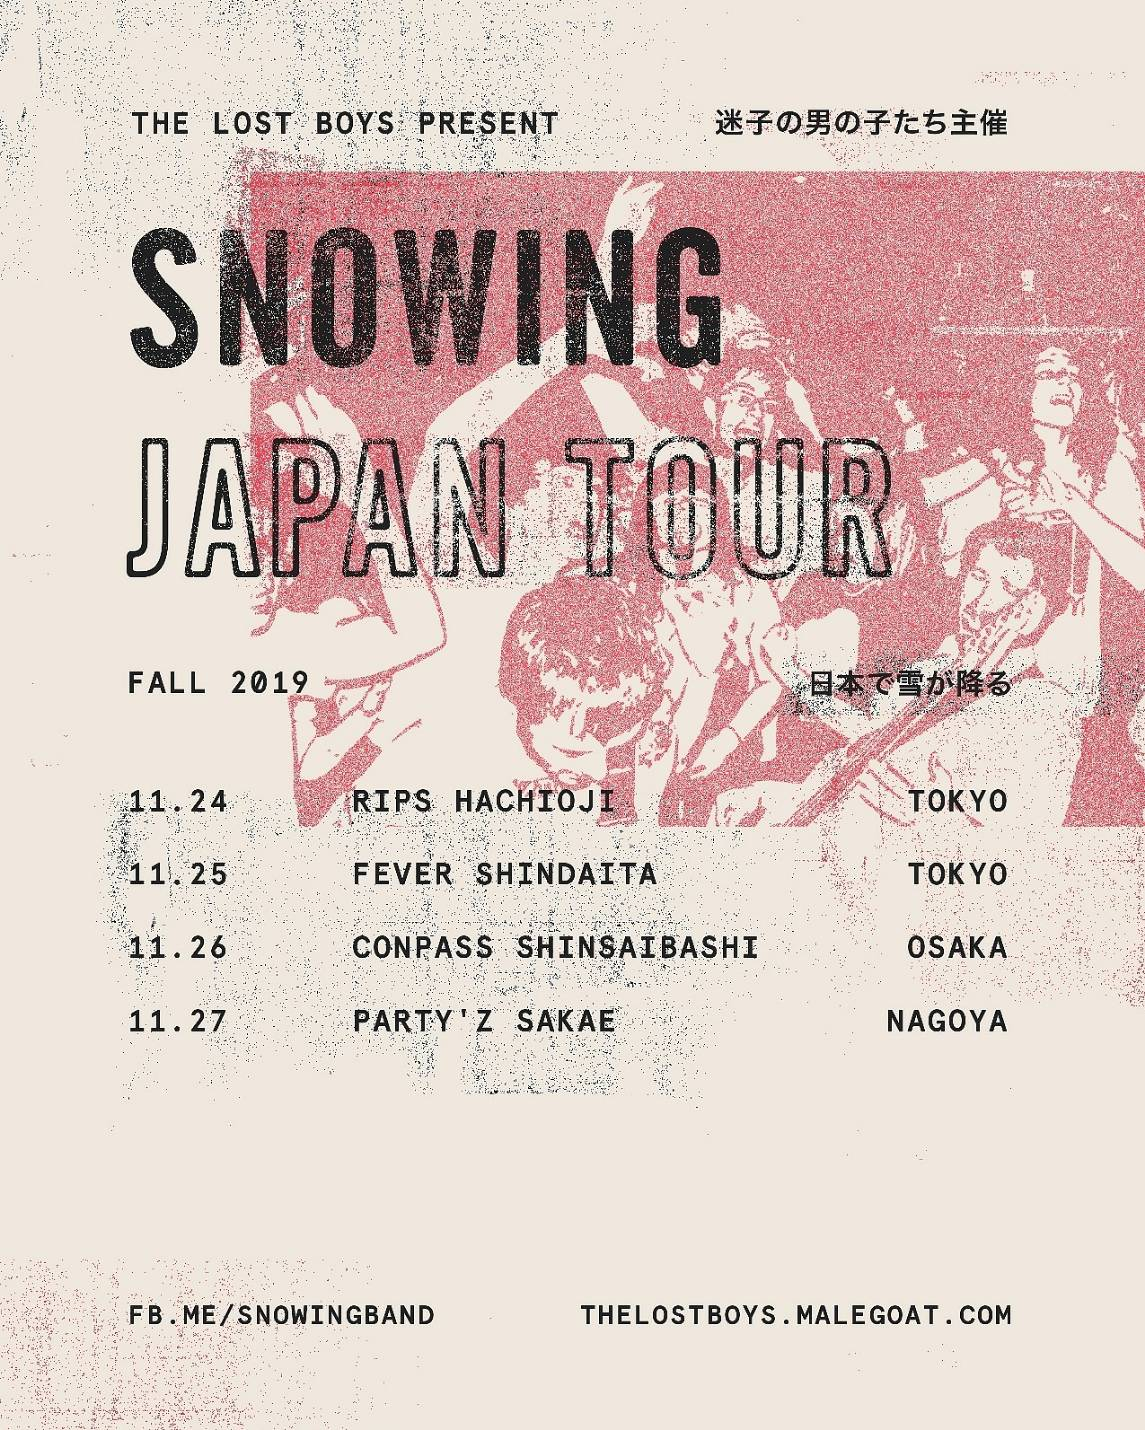 The Lost Boys Present Snowing Japan Tour 2019